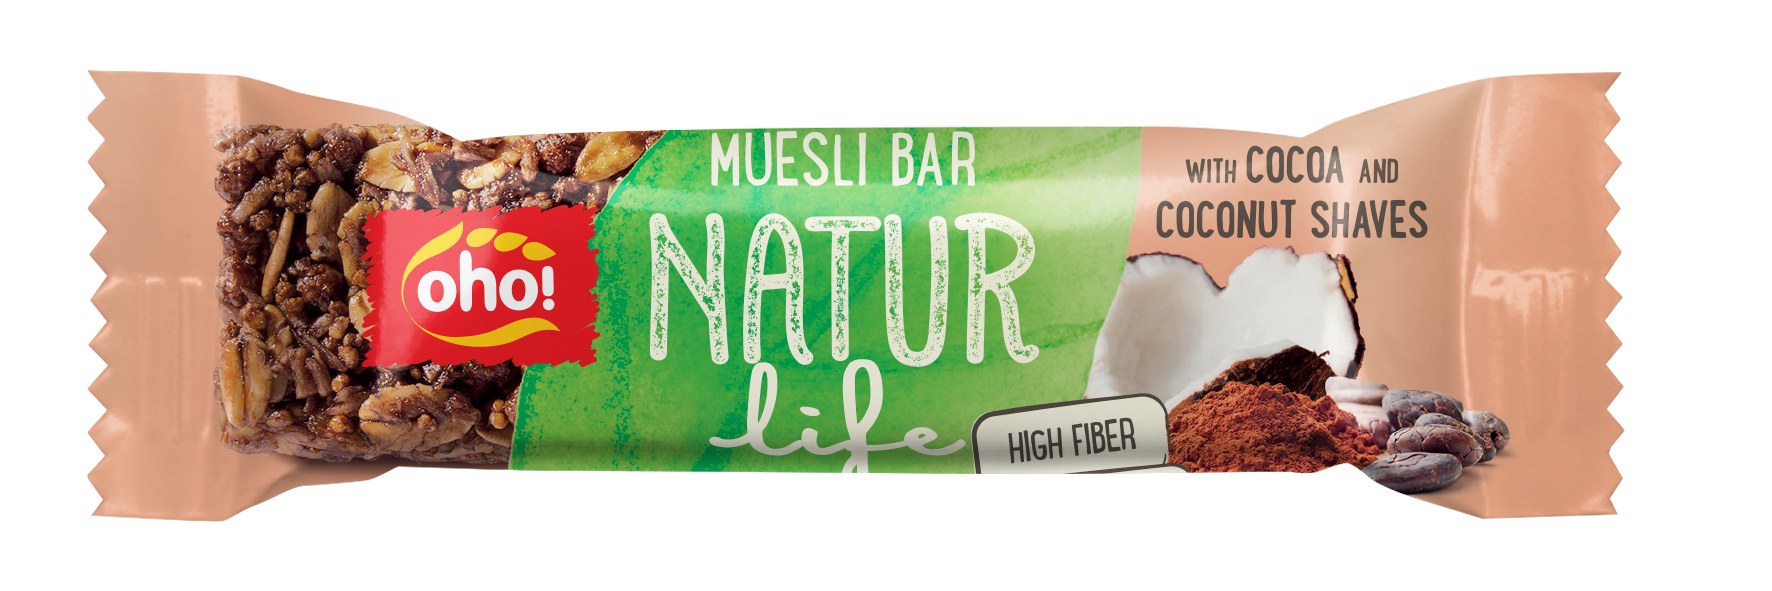 Muesli bar Natur life with cocoa and coconut shaves